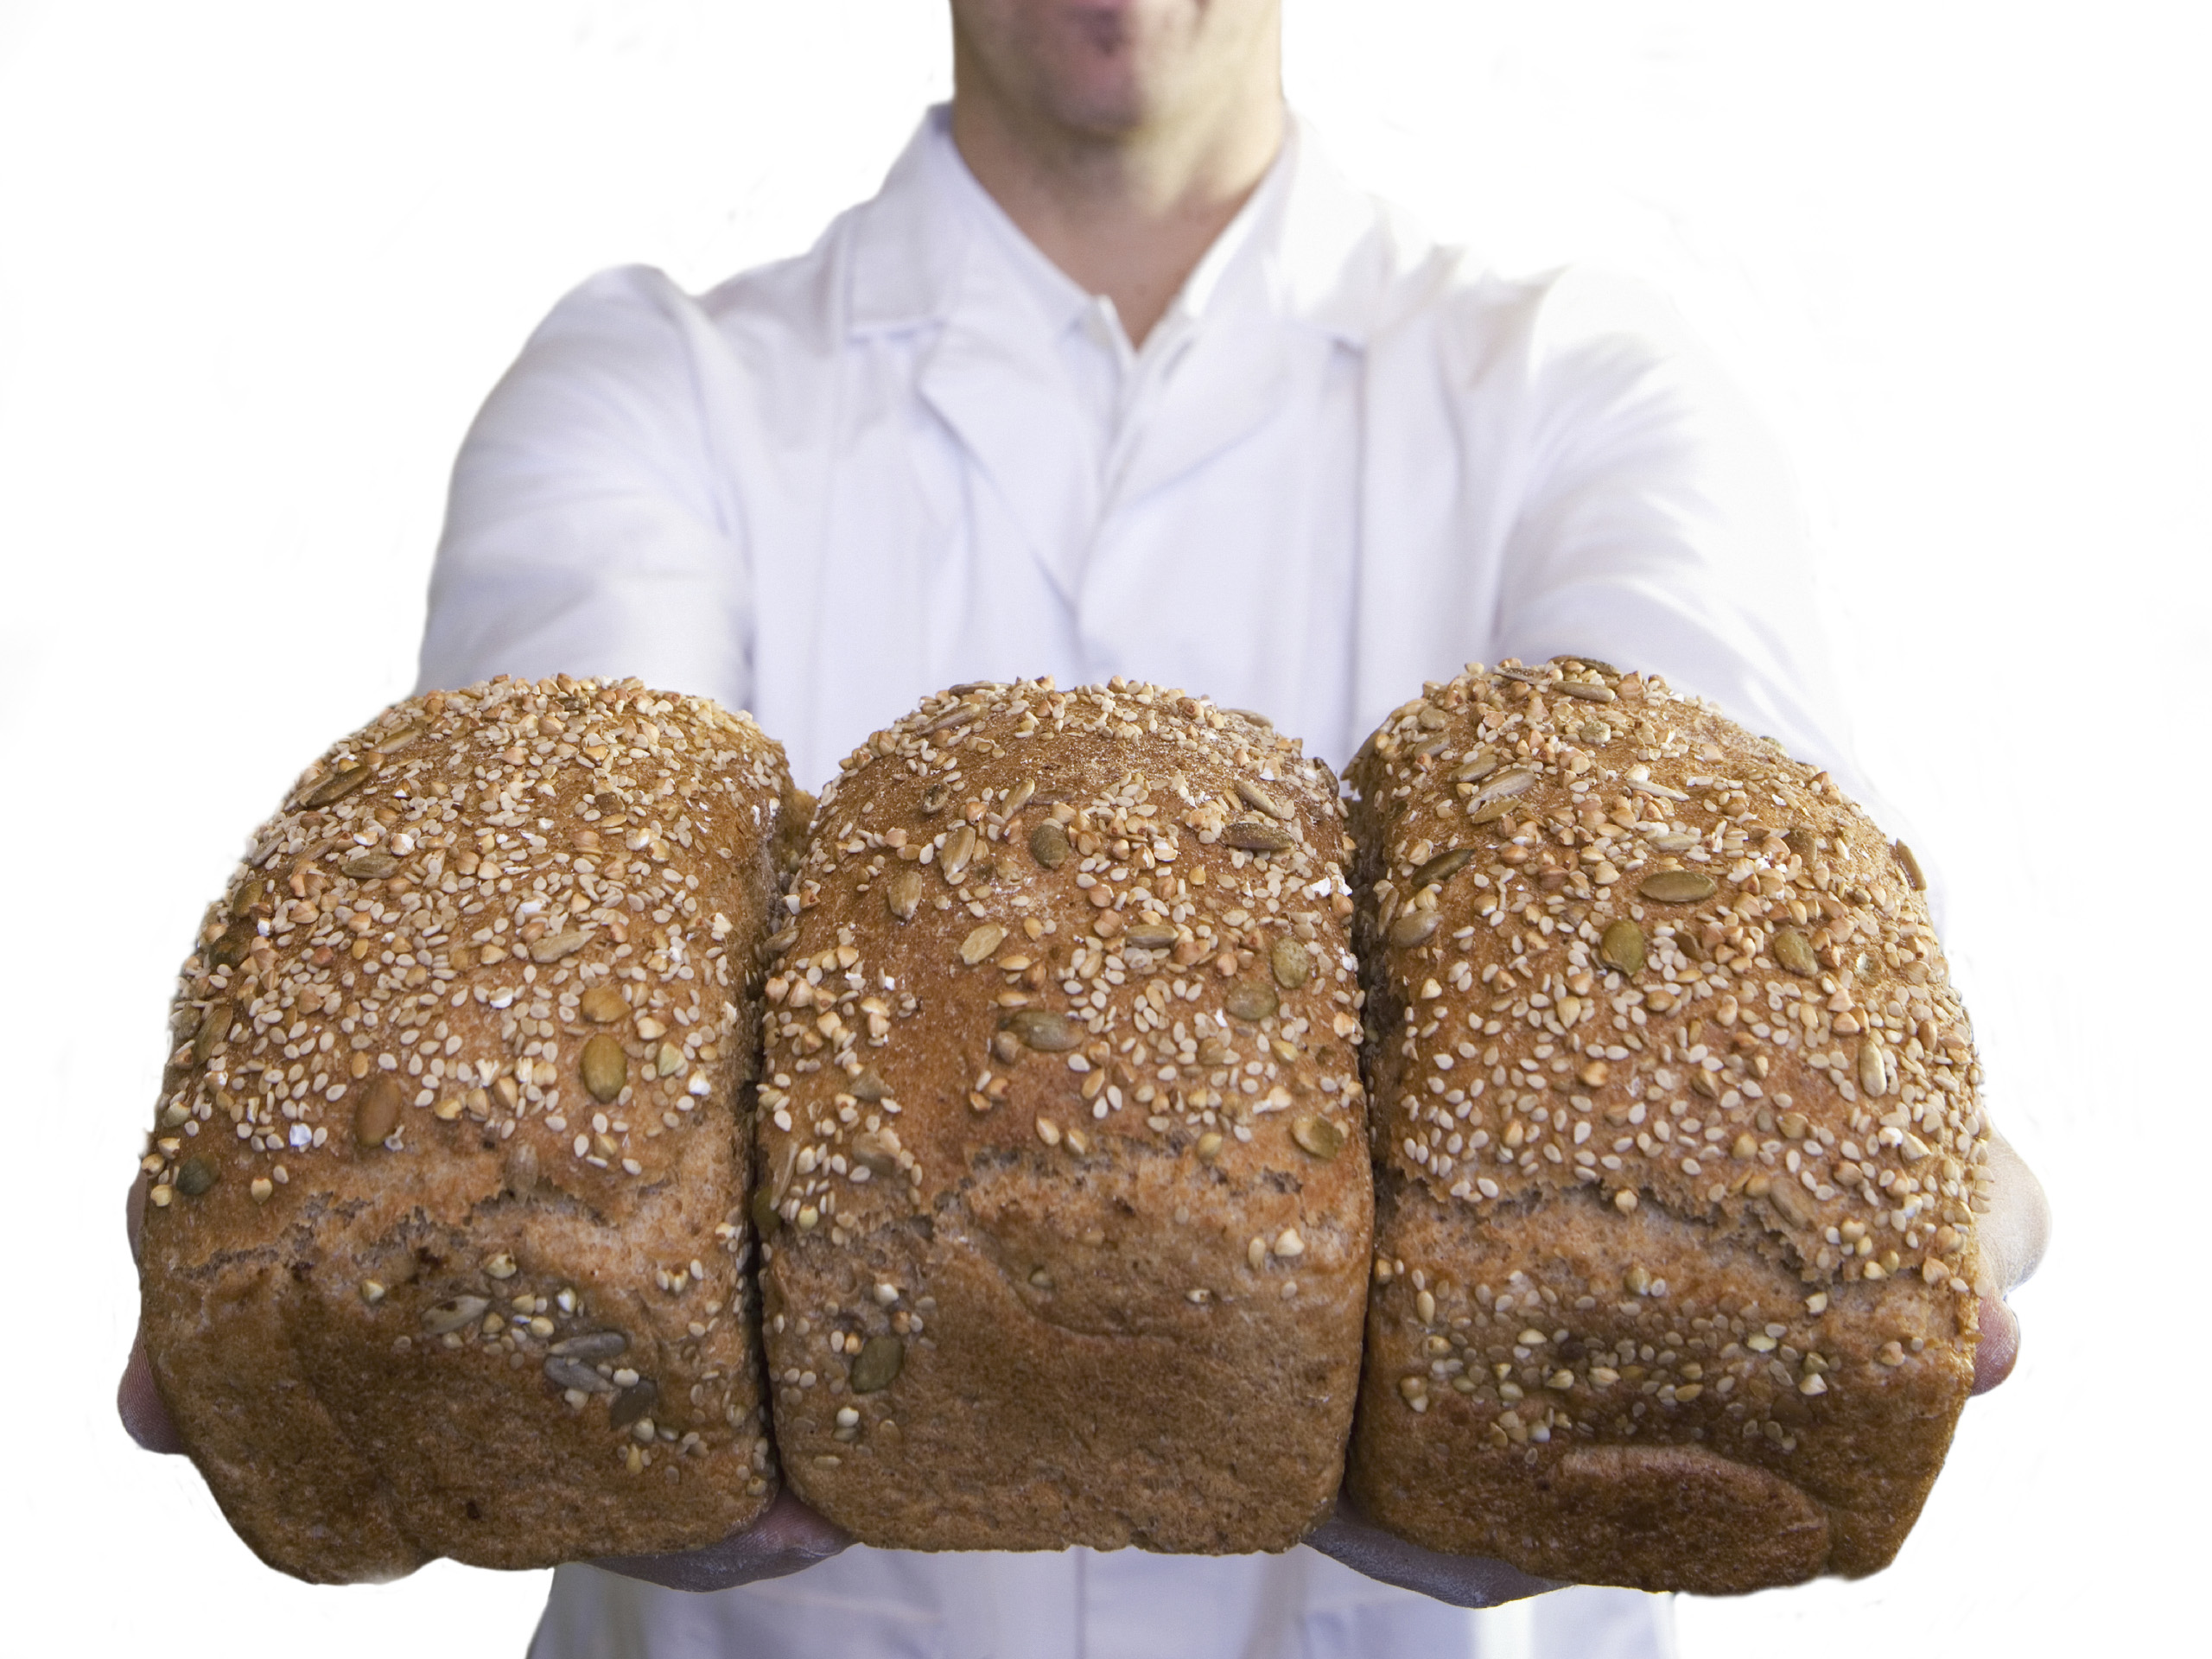 Baker holding fresh bread loaves, cut out